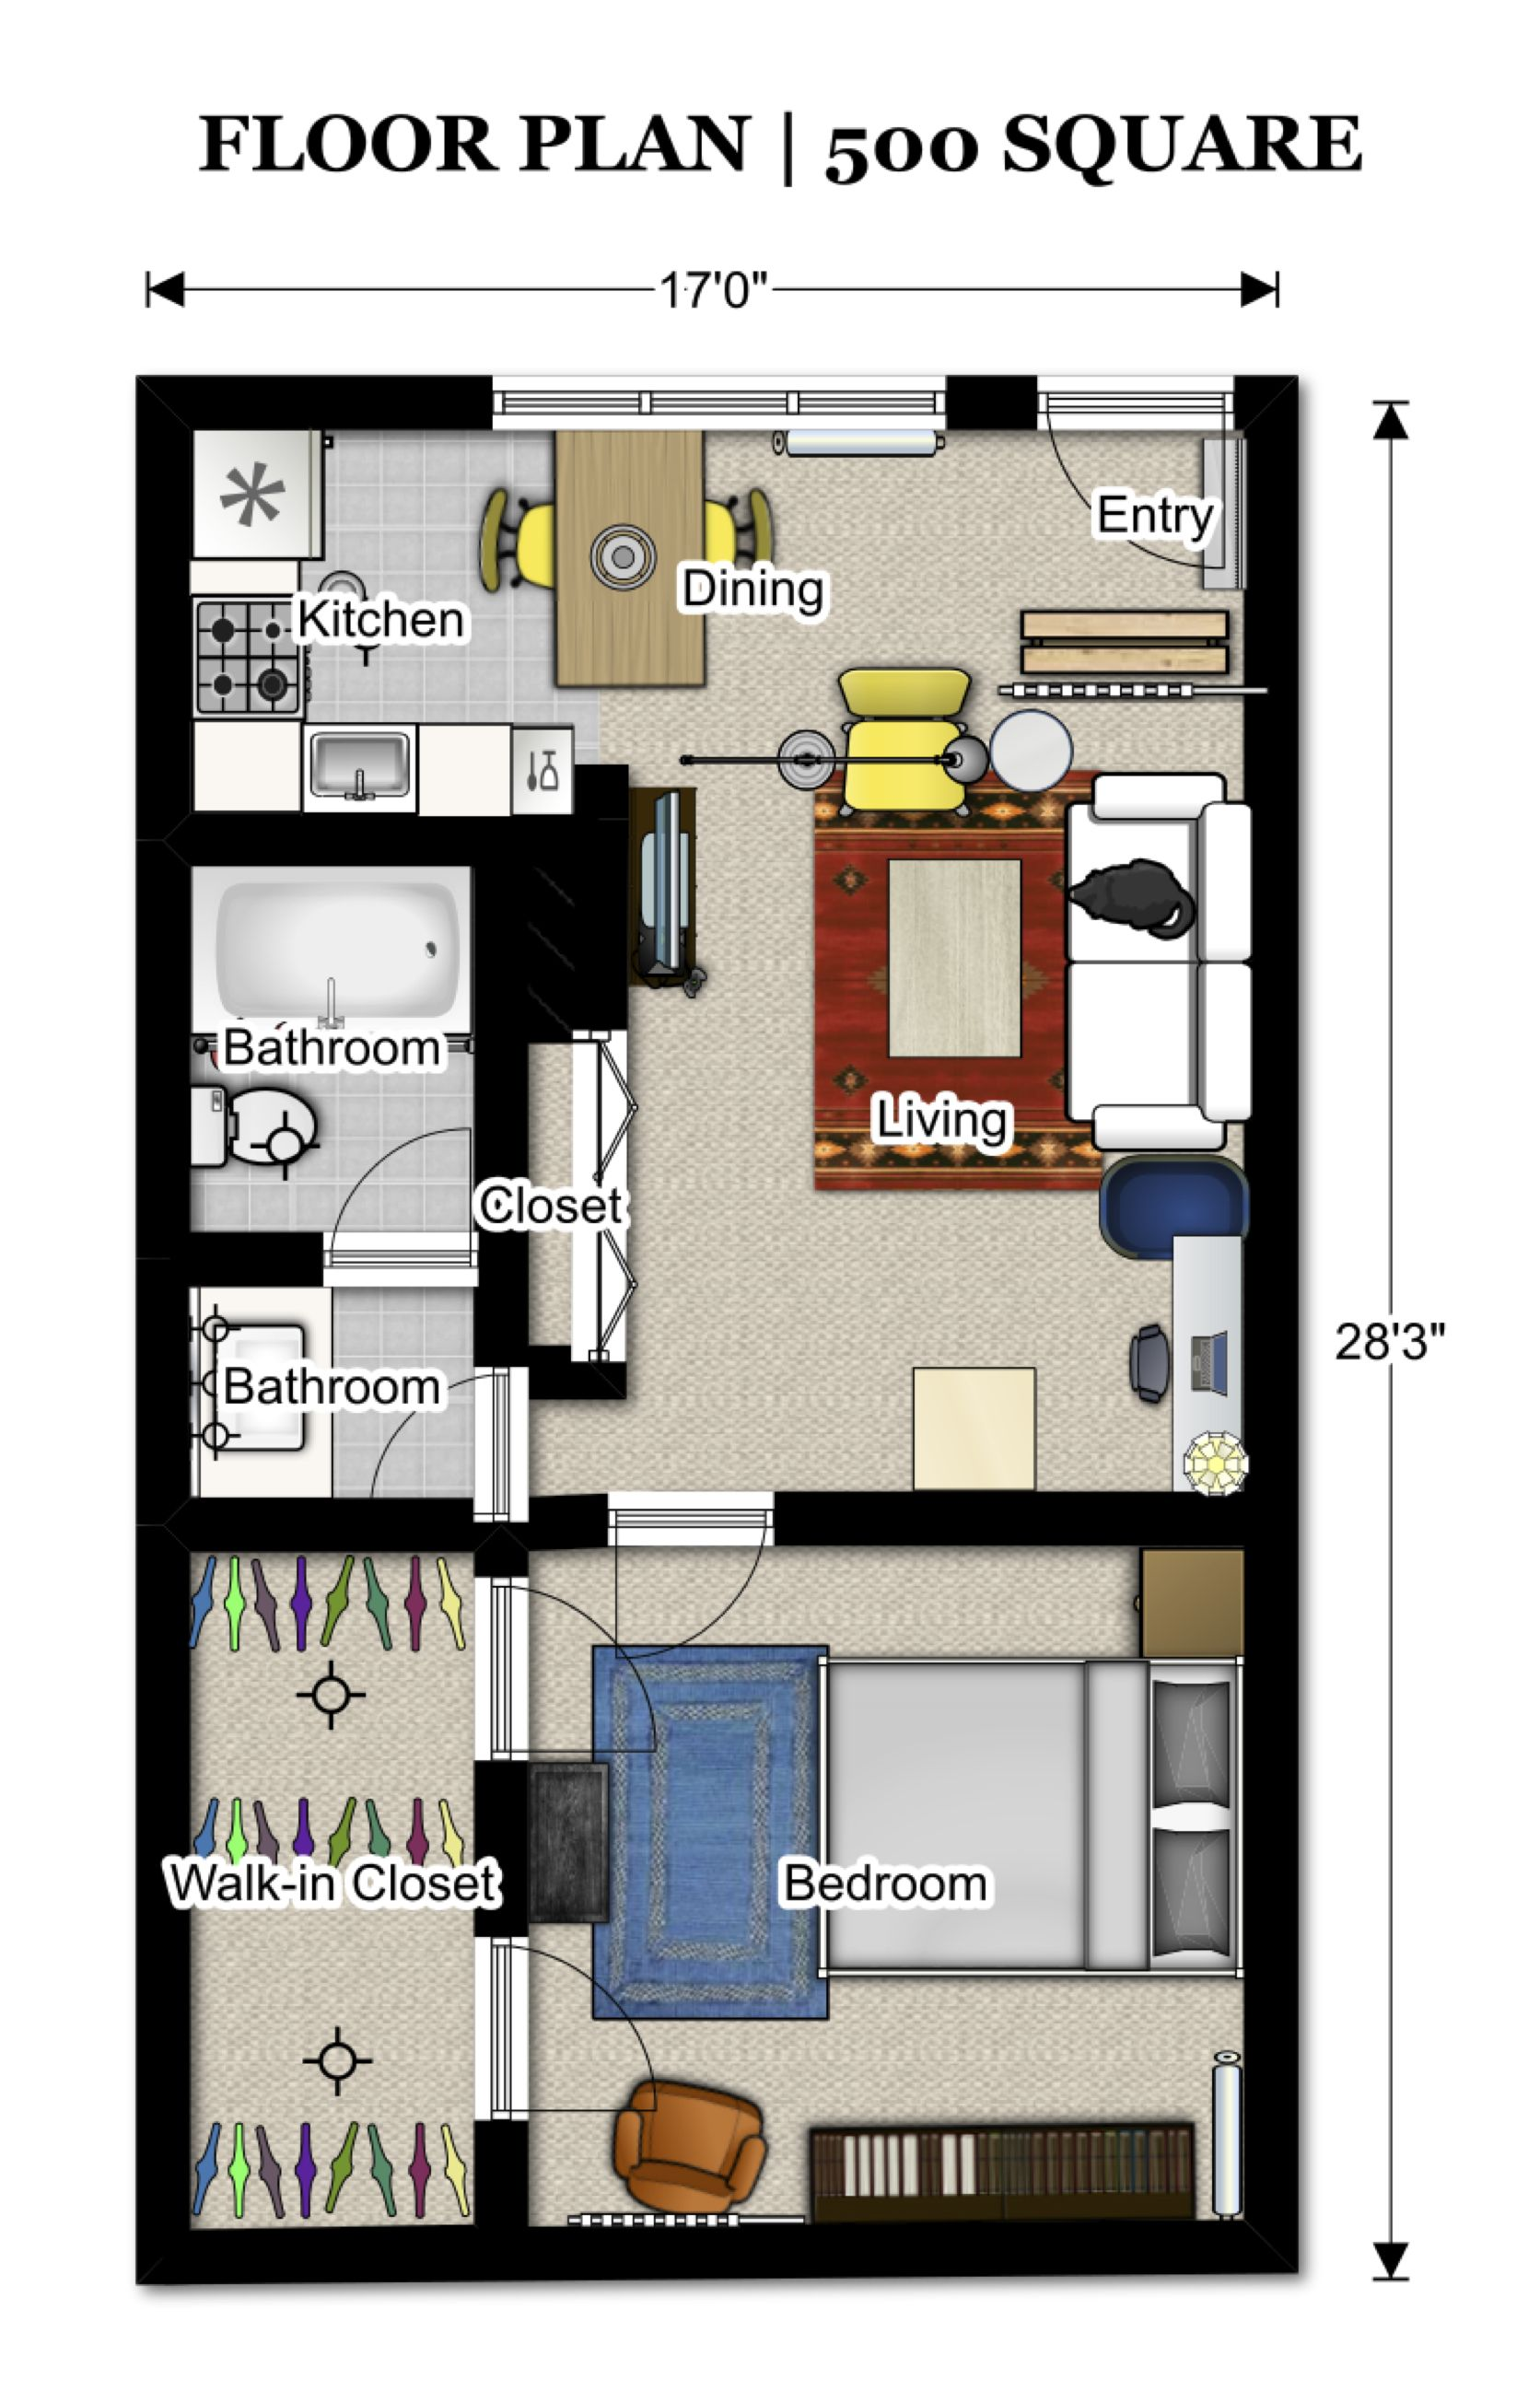 Ikea 500 Square Foot Apartment Google